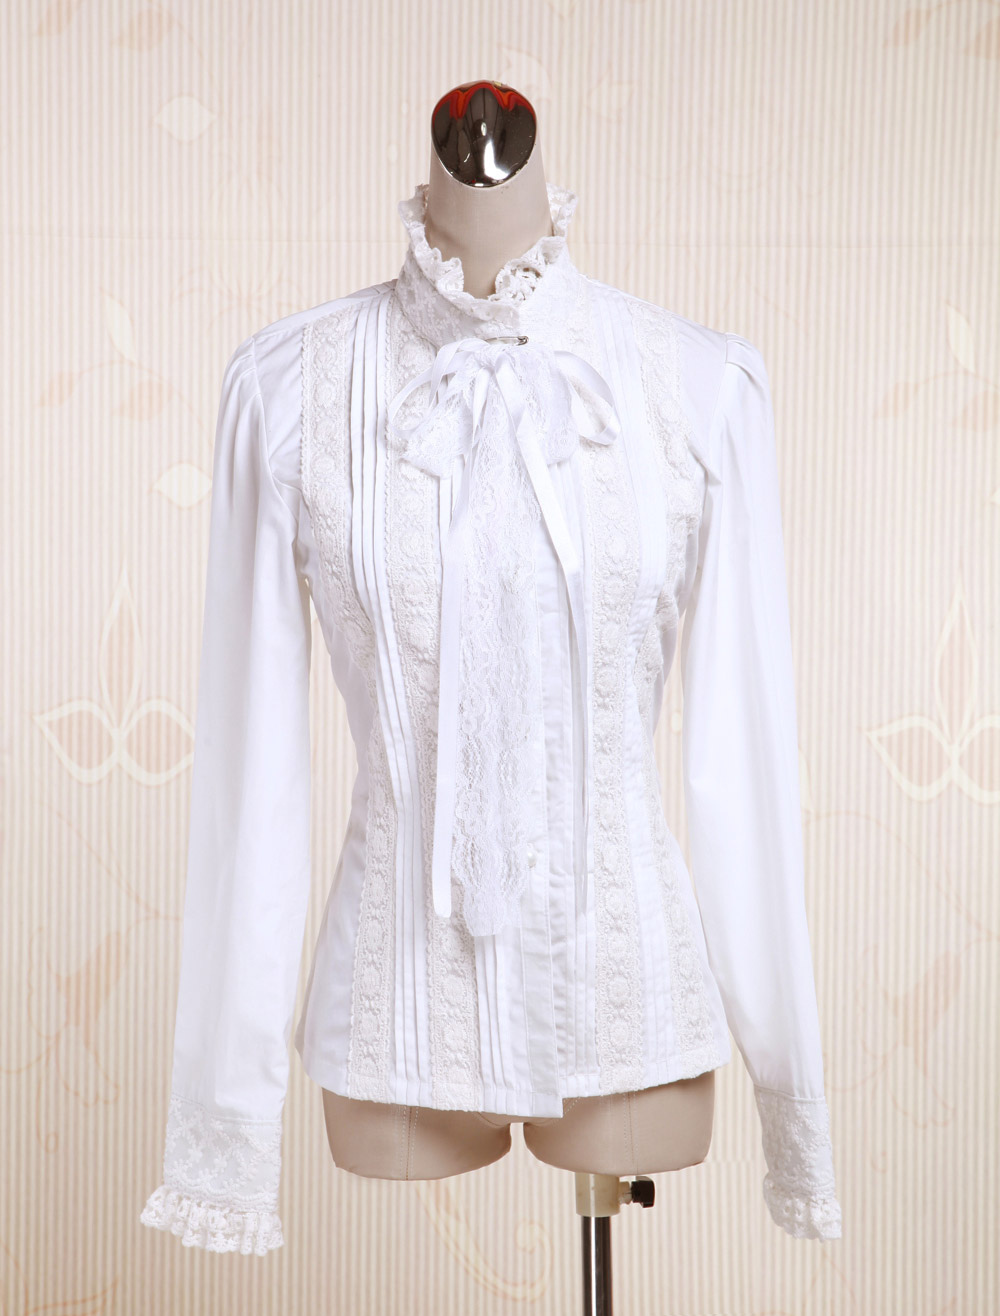 Buy White Cotton Lolita Blouse Long Sleeves Stand Collar Lace Trim Lace Up for $47.99 in Milanoo store